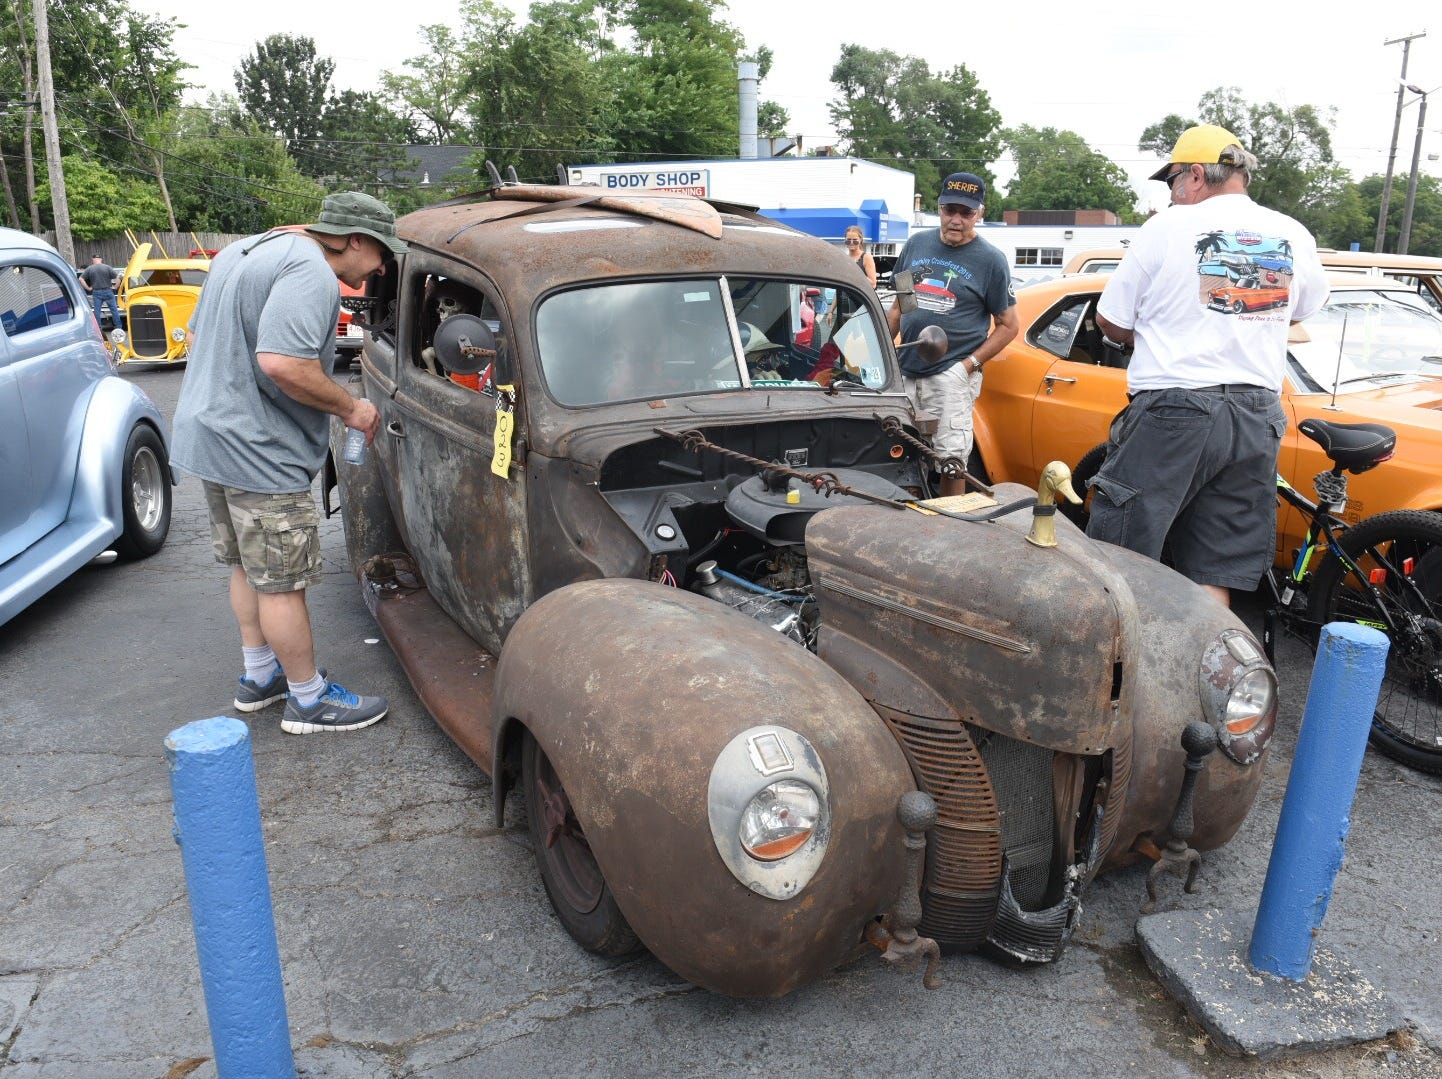 A man peers at a skeleton inside a 1940 Ford sedan in rusted and crispy condition. Owner Chuck Phillips of Smithville, Pennsylvania, displayed it along Woodward at Webster in Royal Oak. Max Ortiz, The Detroit News